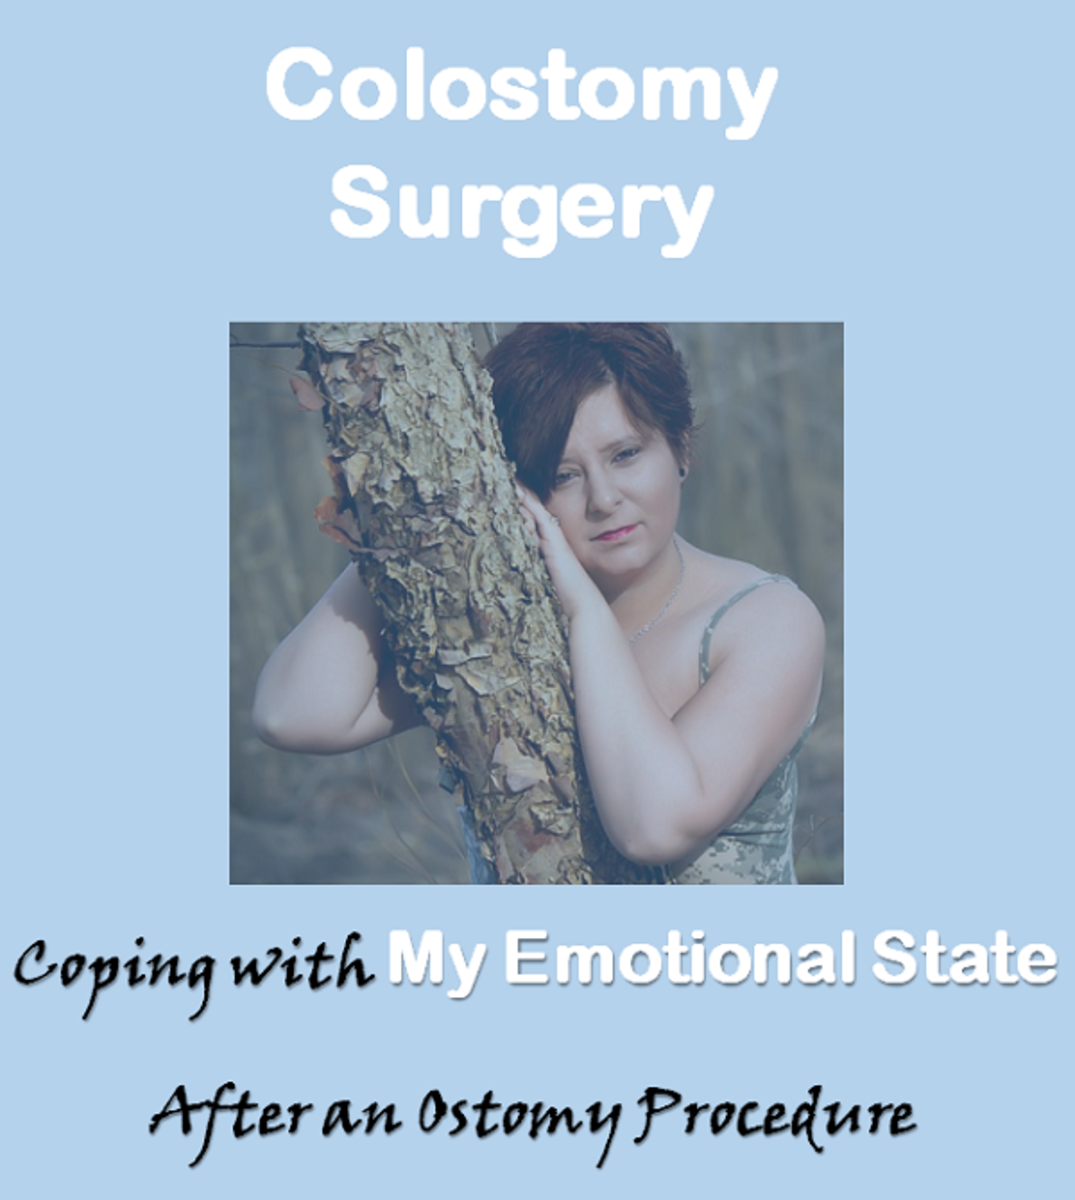 My Emotional State After Colostomy Surgery